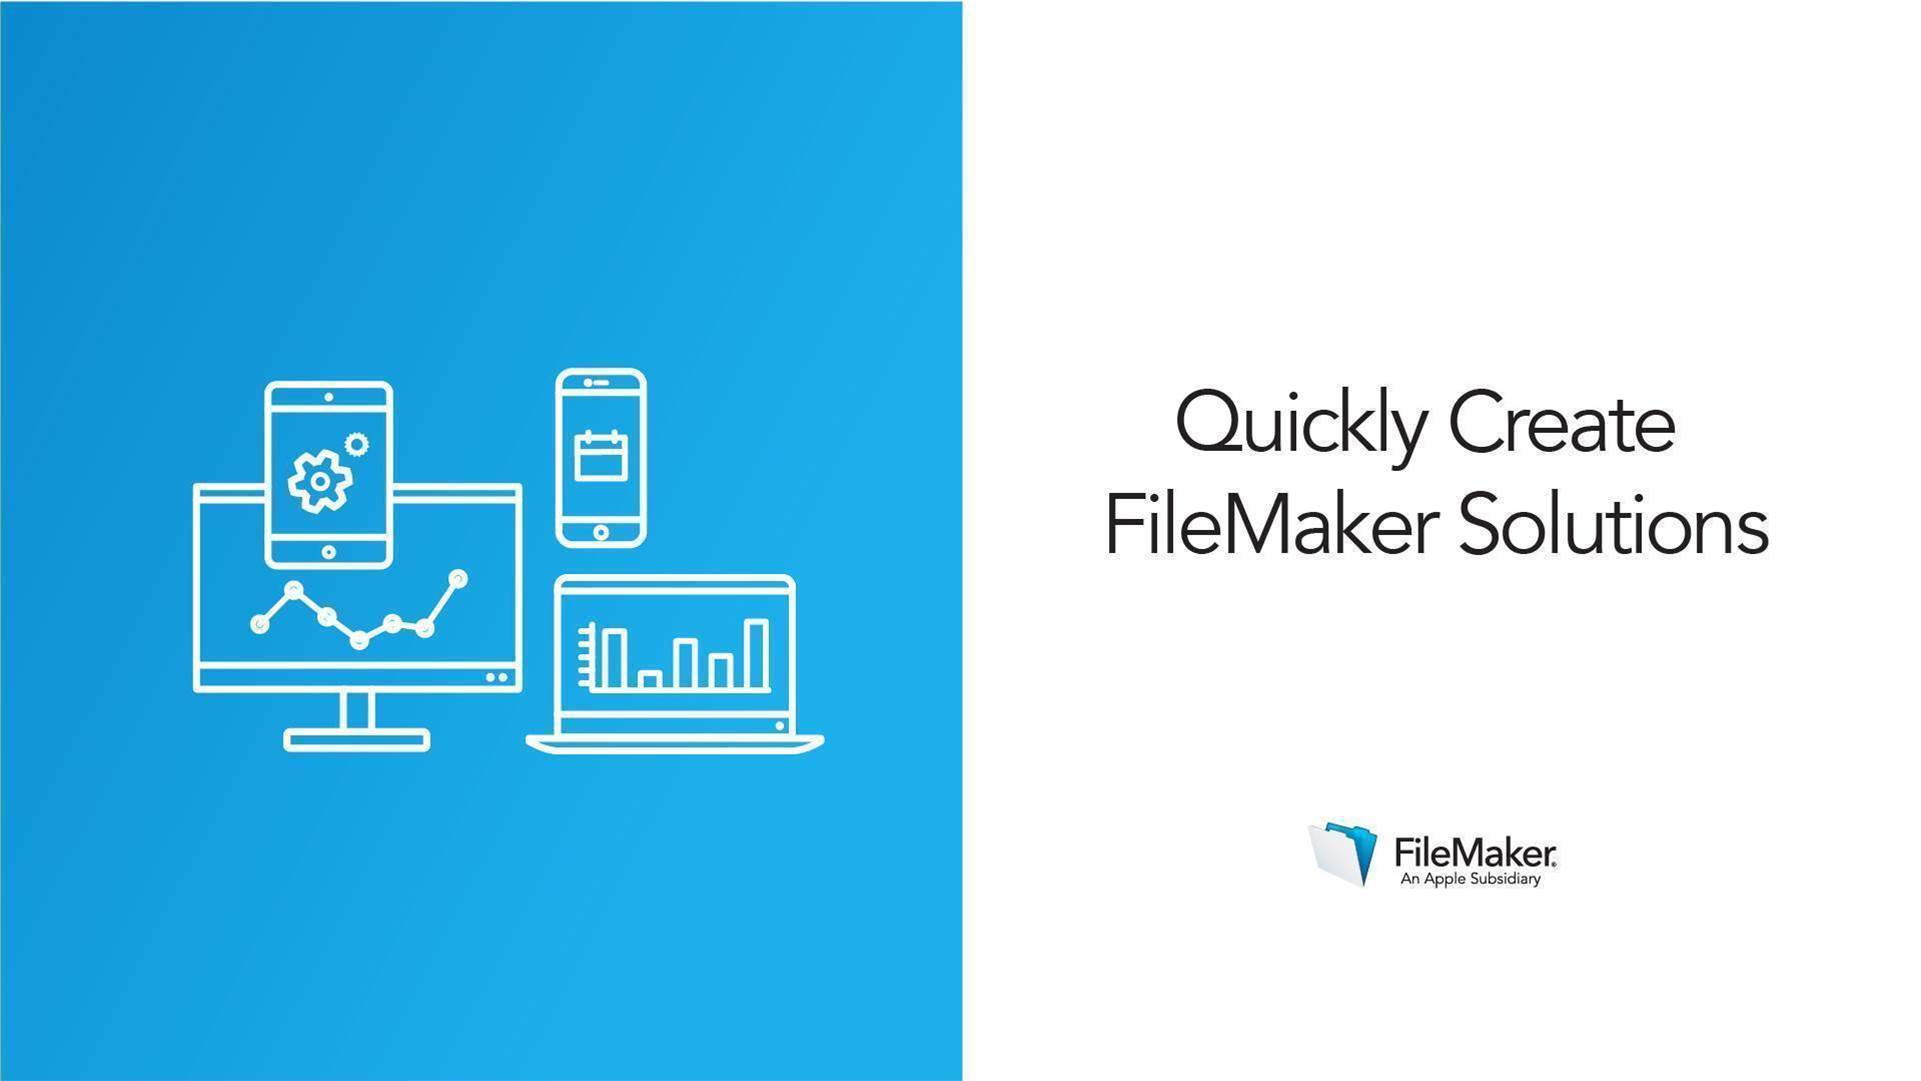 New FileMaker resources for wannabe app developers